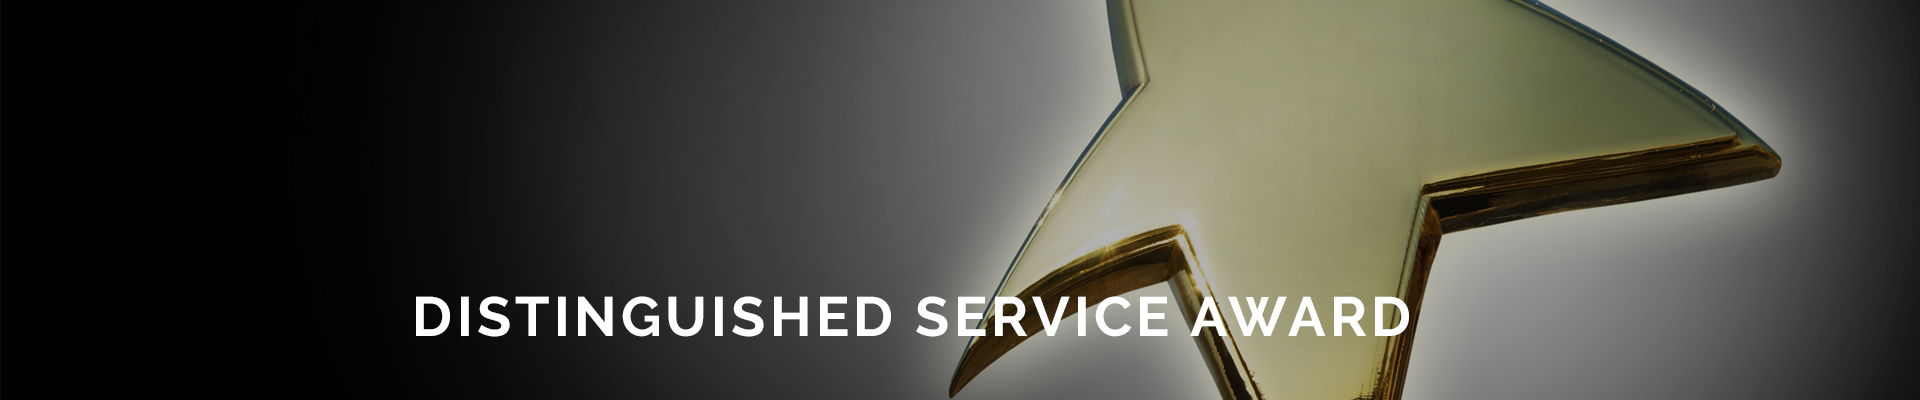 distinguished_service_award_header